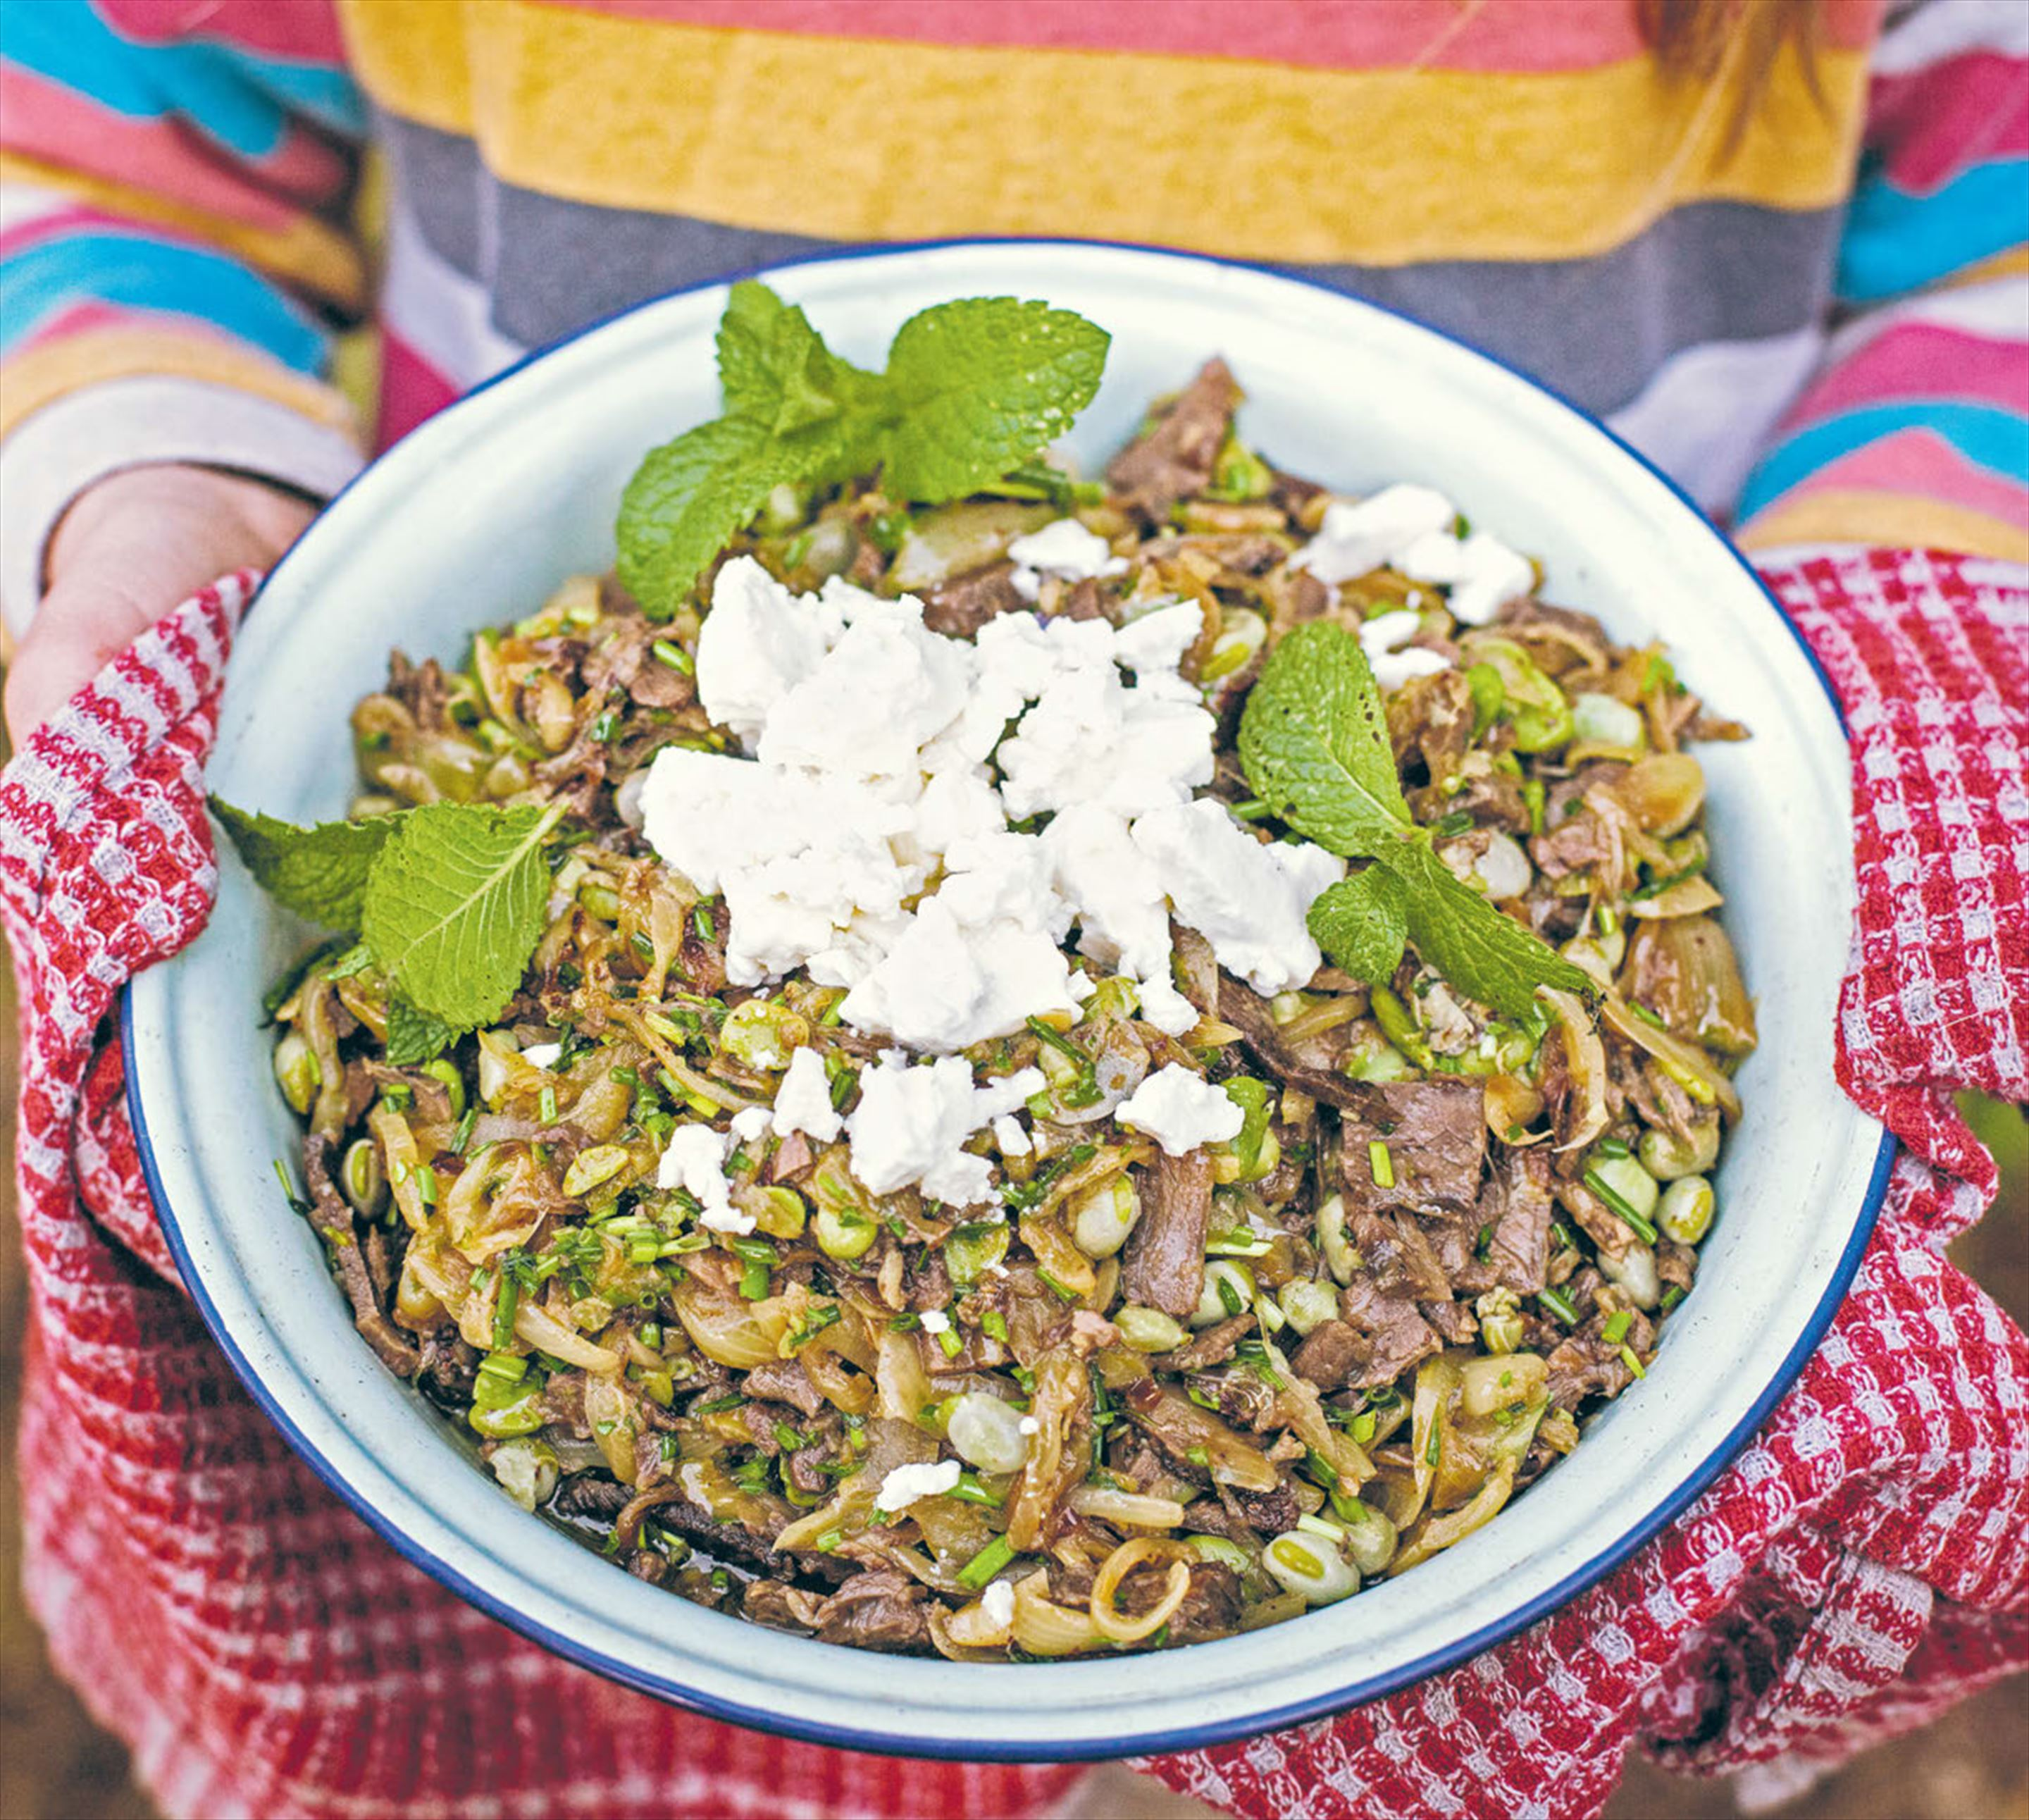 Broad bean & venison warm salad